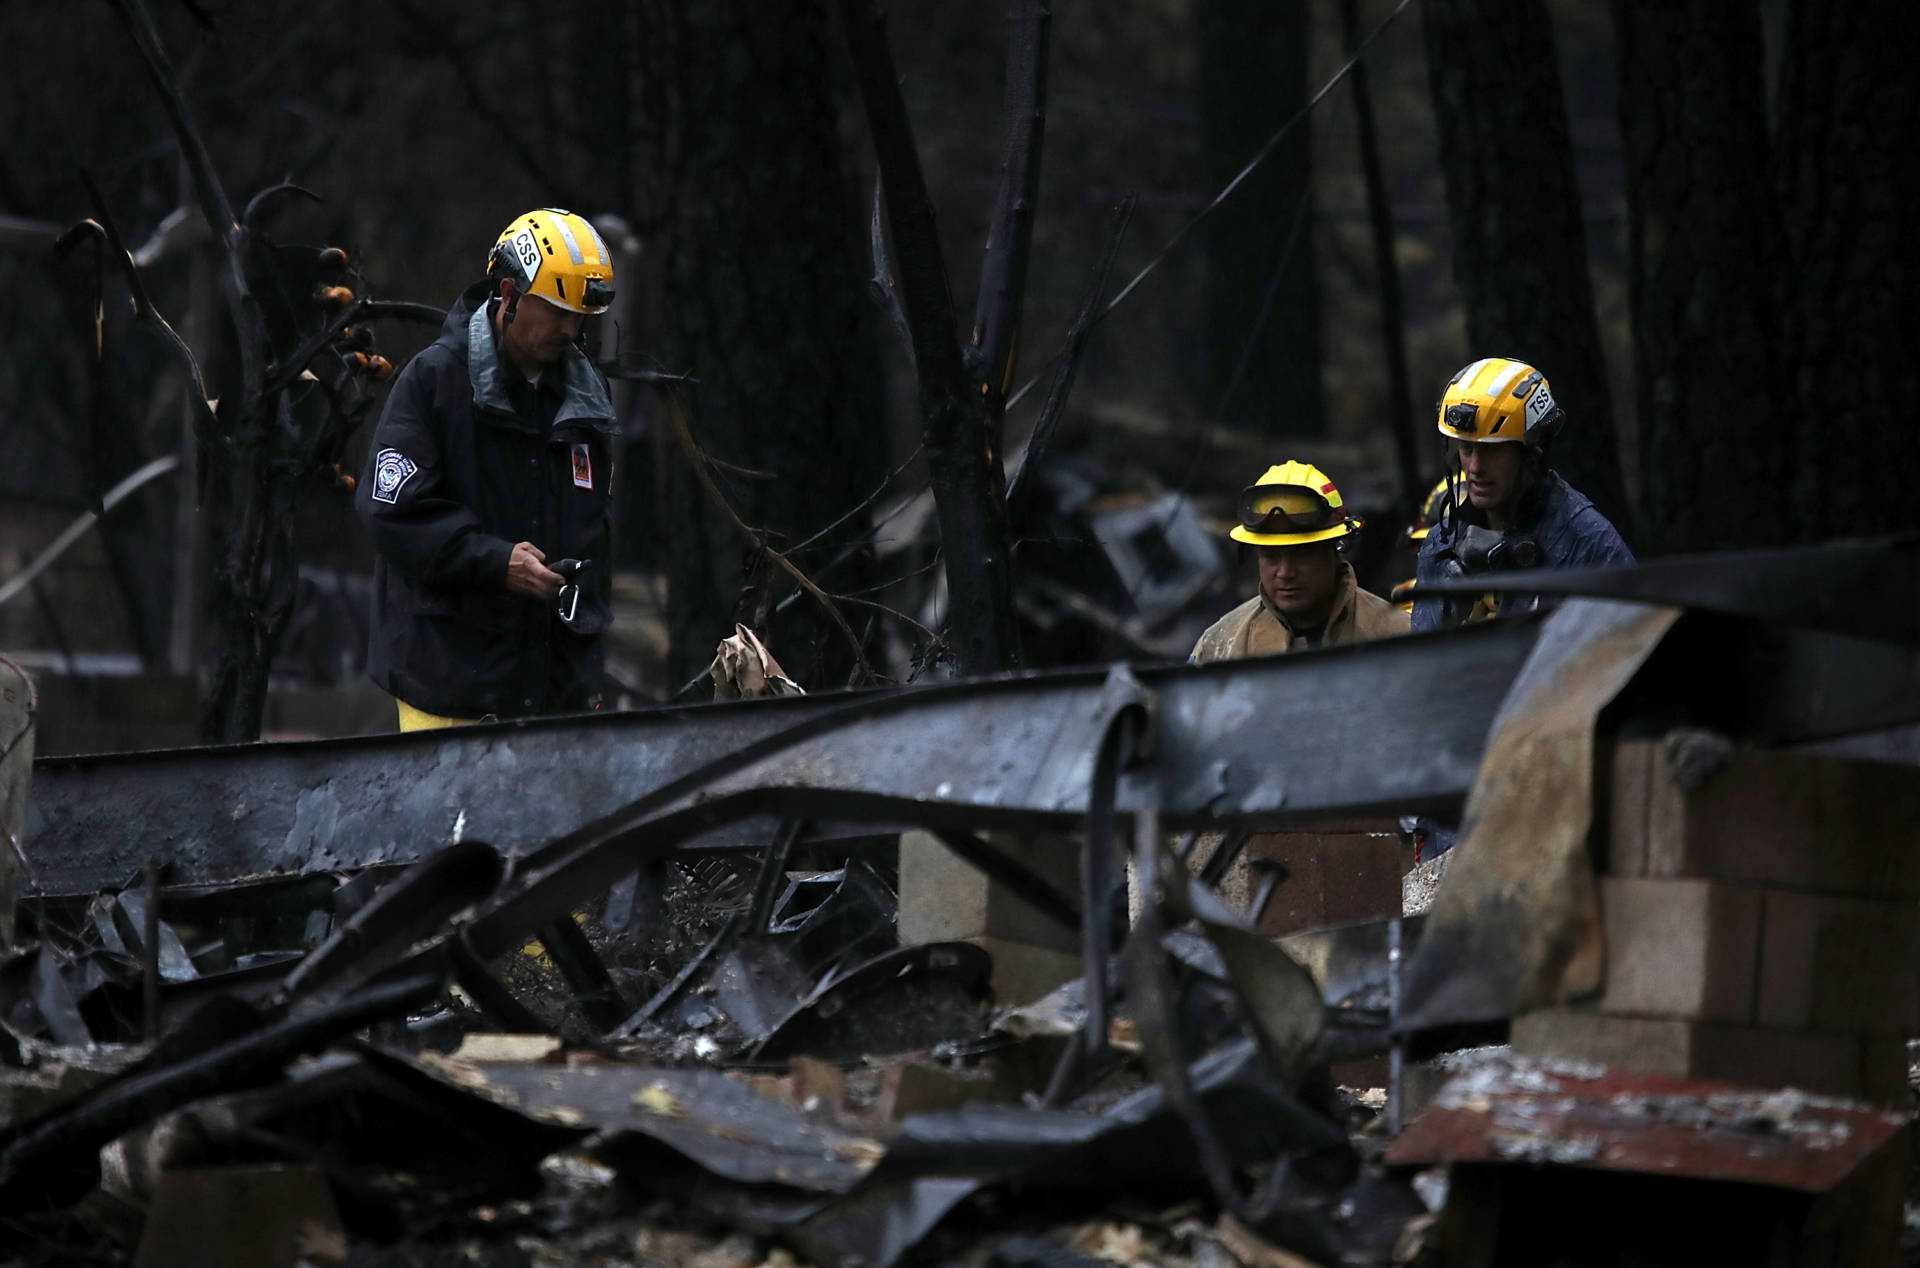 A crew searches for human remains in the ruins of a residence destroyed by the Camp Fire. Search teams have combed through nearly 18,000 structures and located 88 victims of the blaze, the deadliest and most destructive in California history.  Justin Sullivan/Getty Images